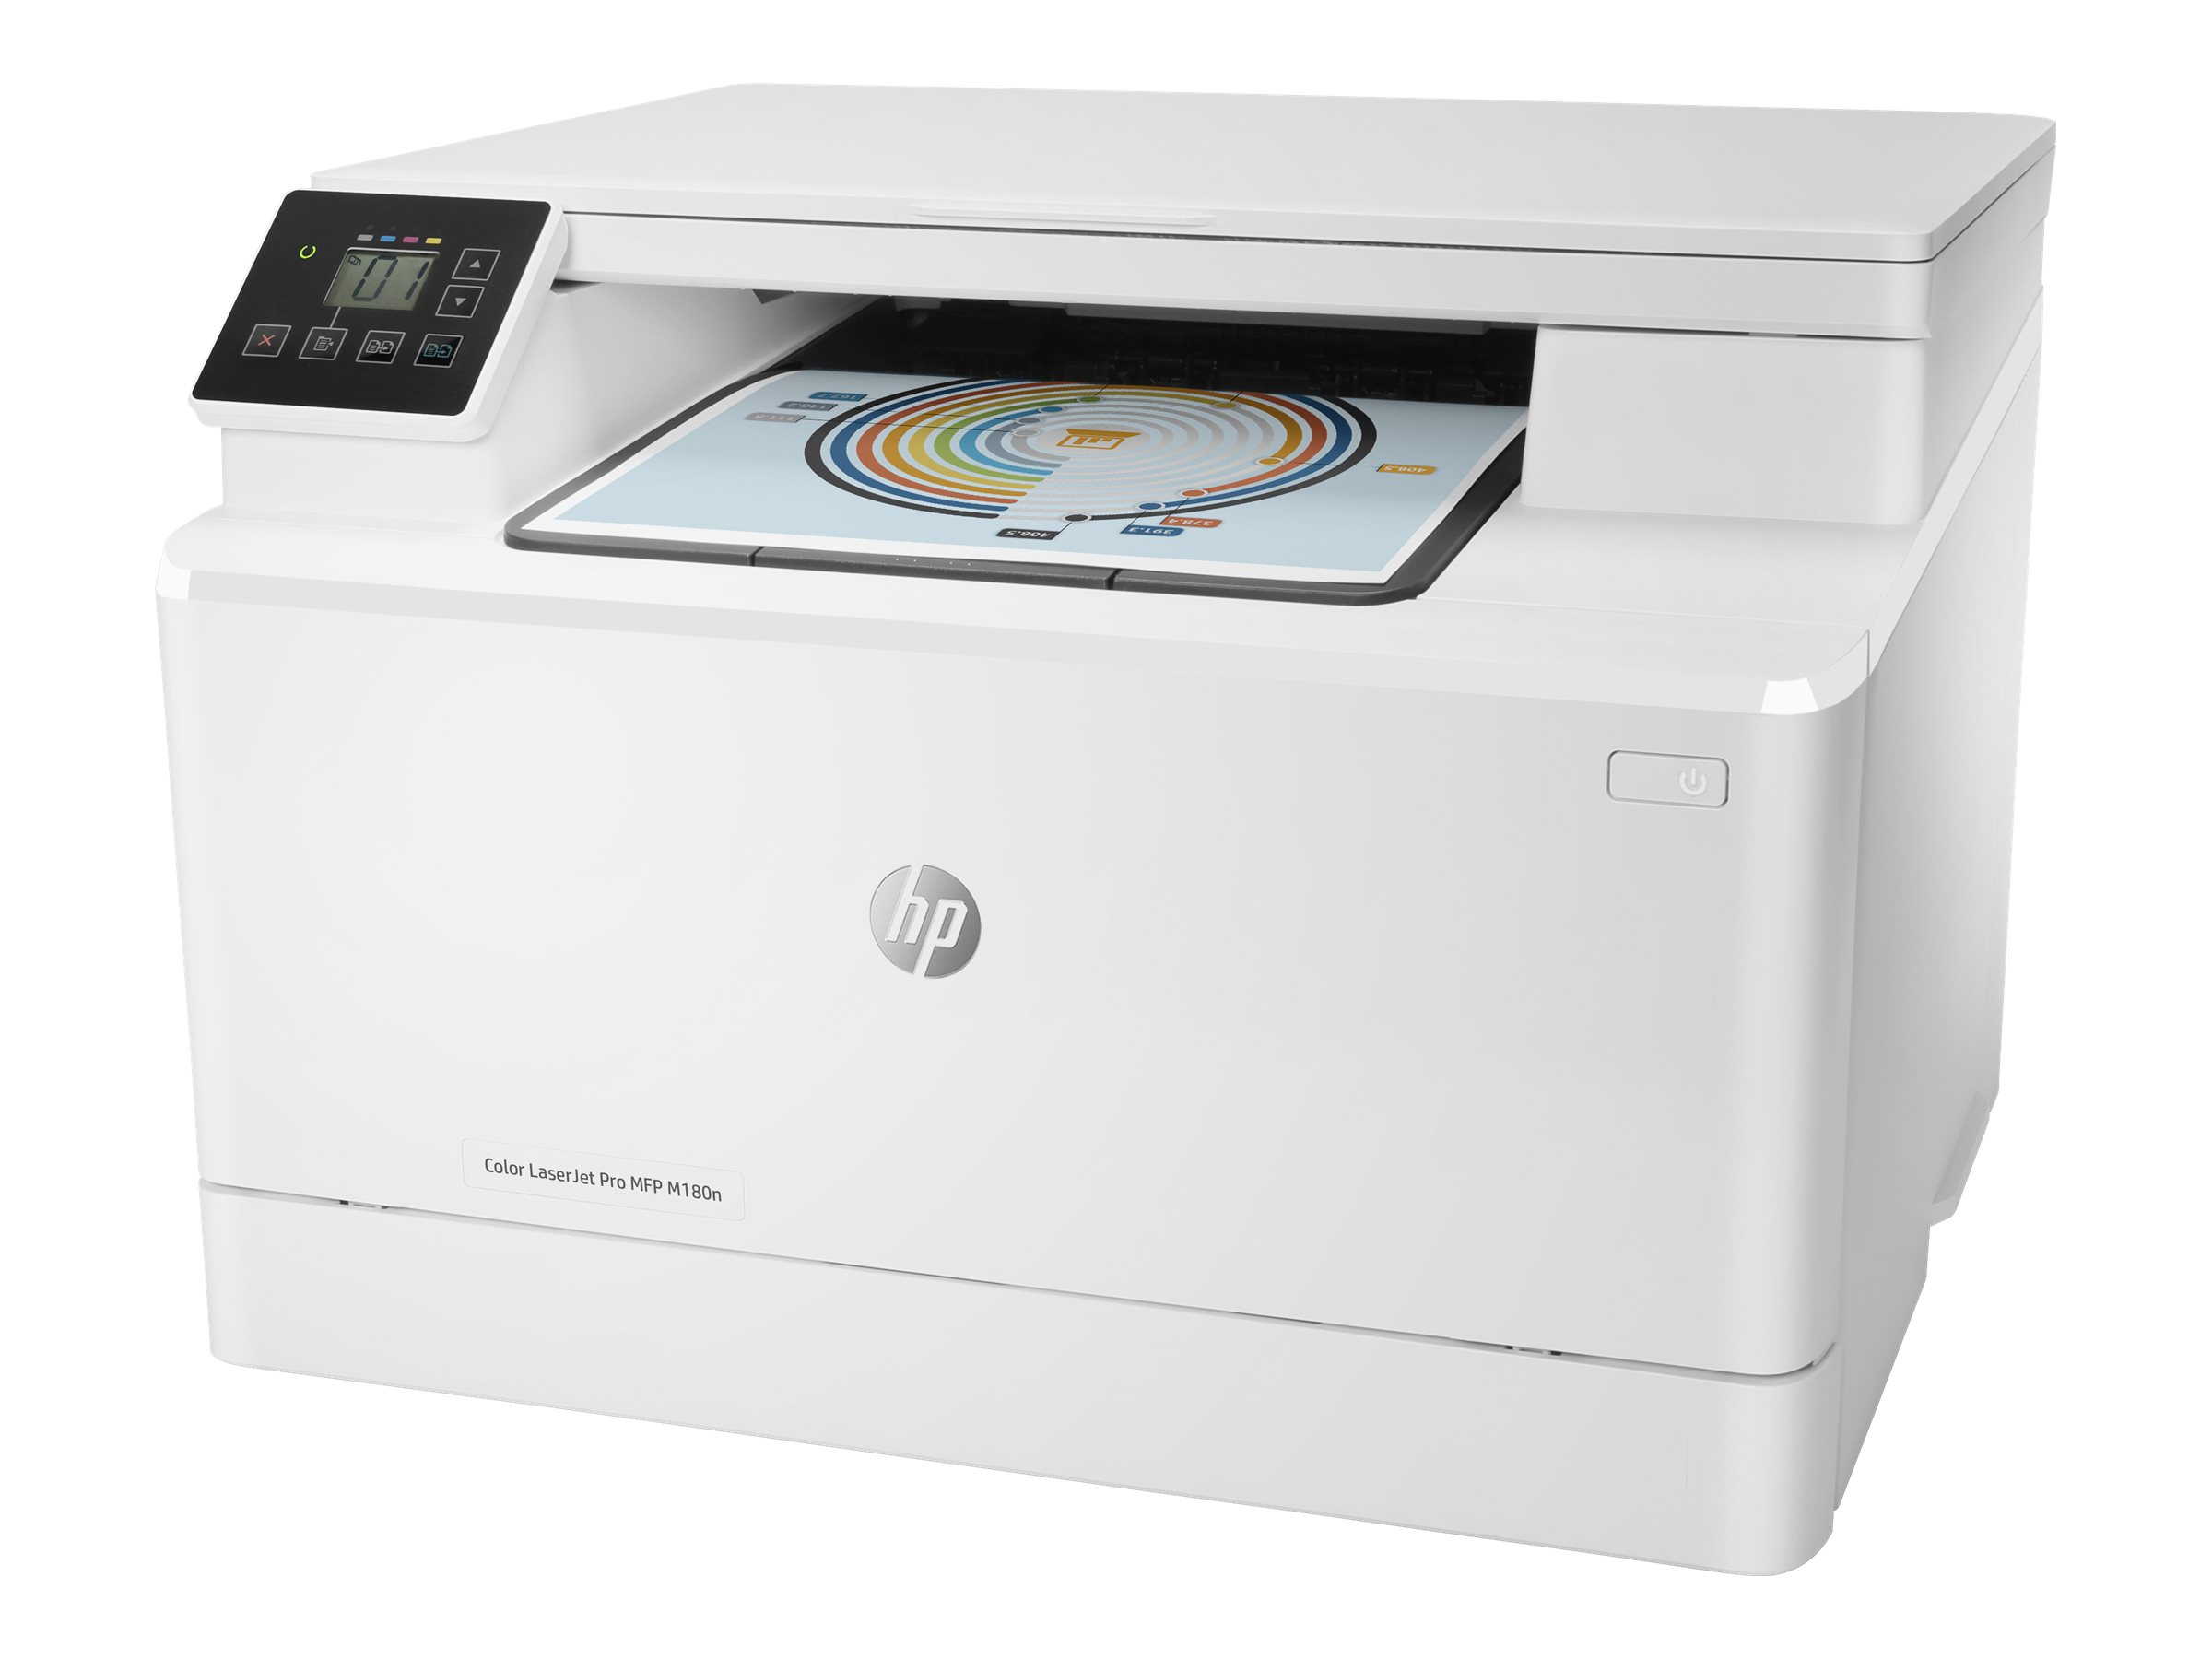 hp color laserjet pro mfp m180n imprimante multifonctions couleur laser imprimantes. Black Bedroom Furniture Sets. Home Design Ideas